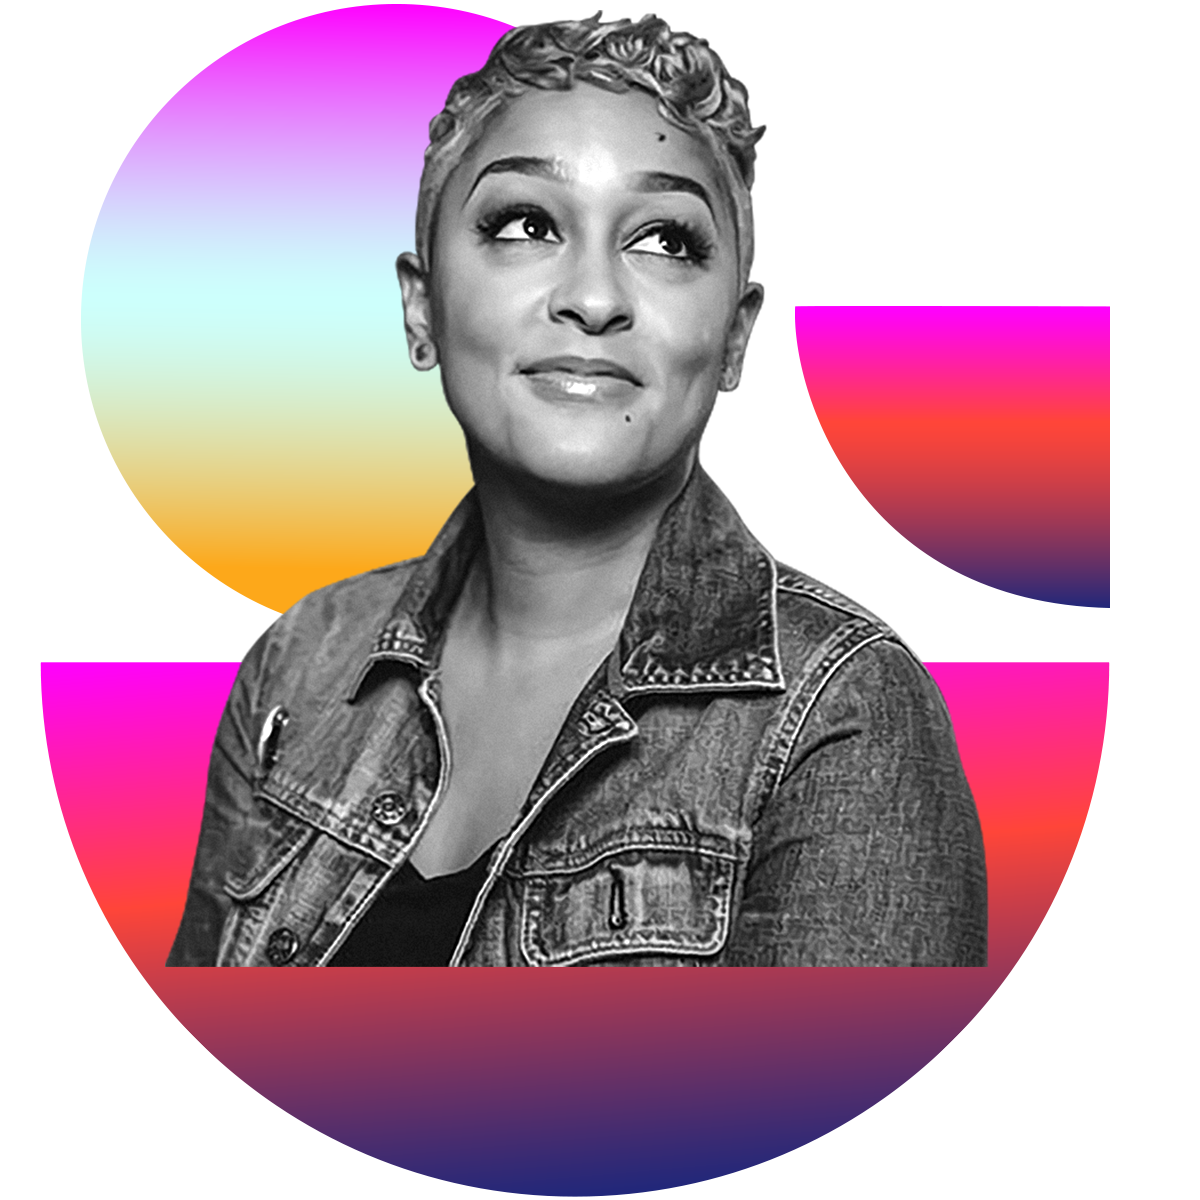 Photo illustration of Eve Ewing in black and white surrounded by colored gradients